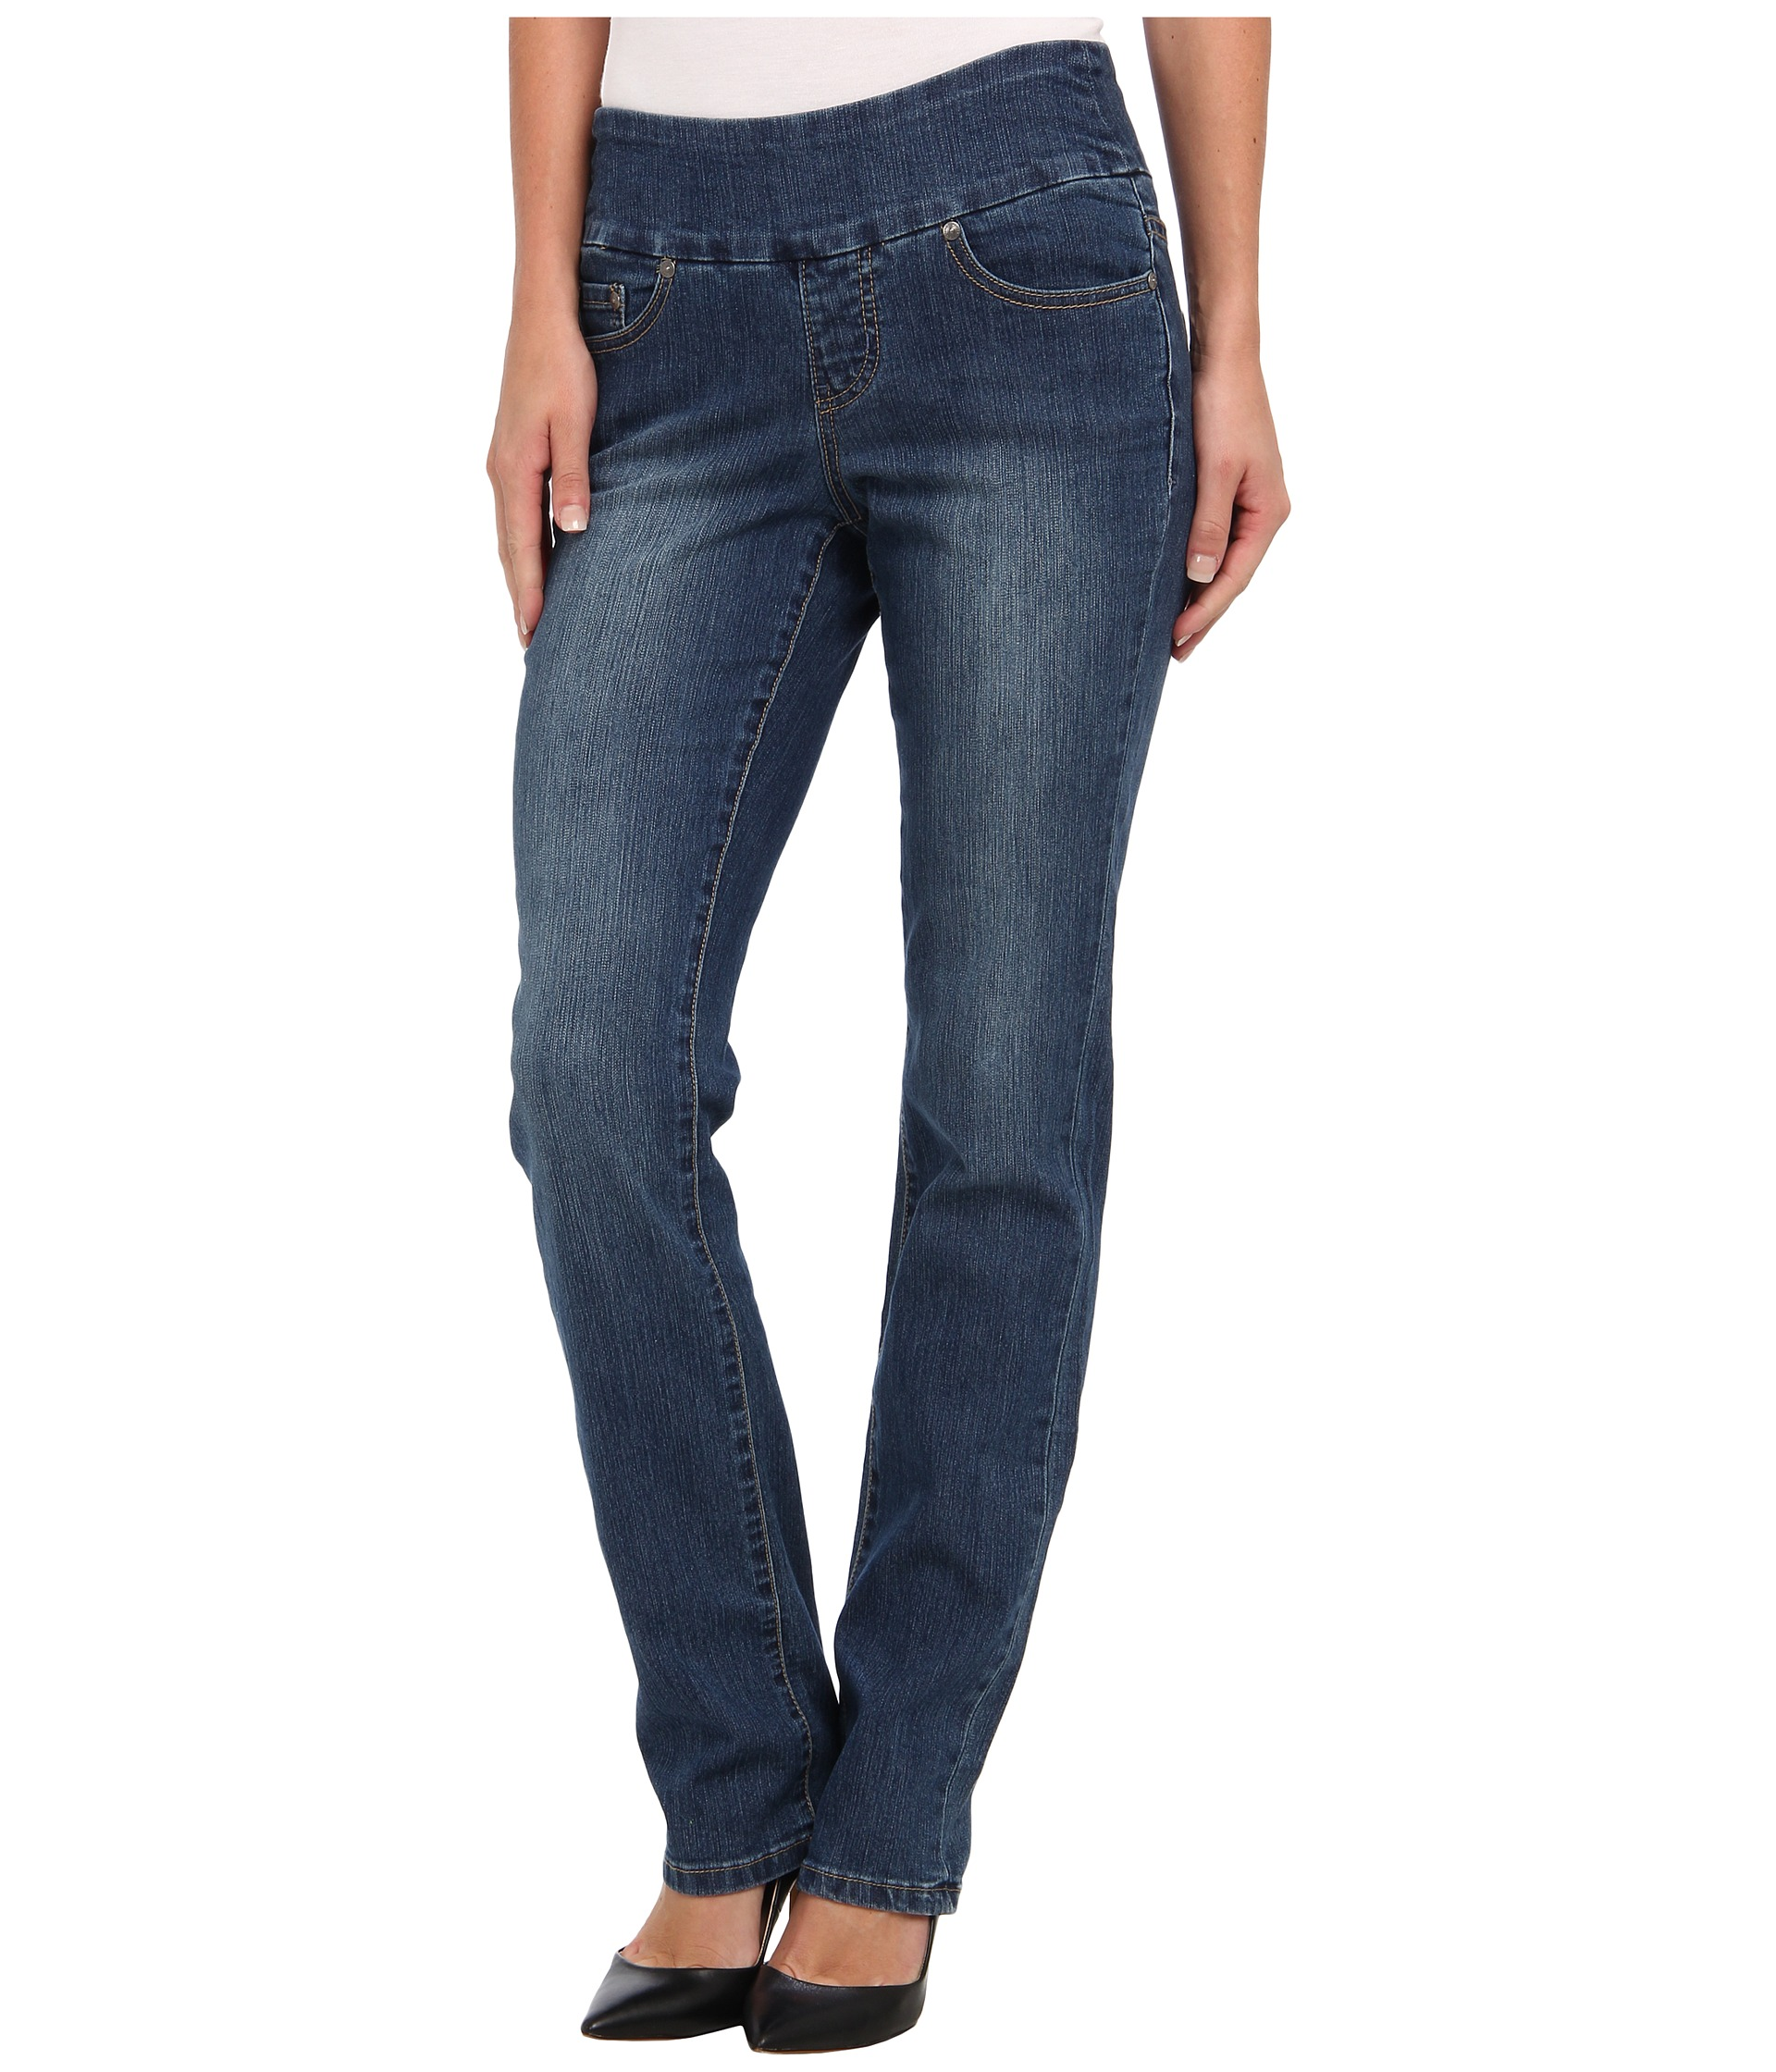 Jag Jeans Peri Pull-On Straight in Blue Dive - Zappos.com Free Shipping BOTH Ways